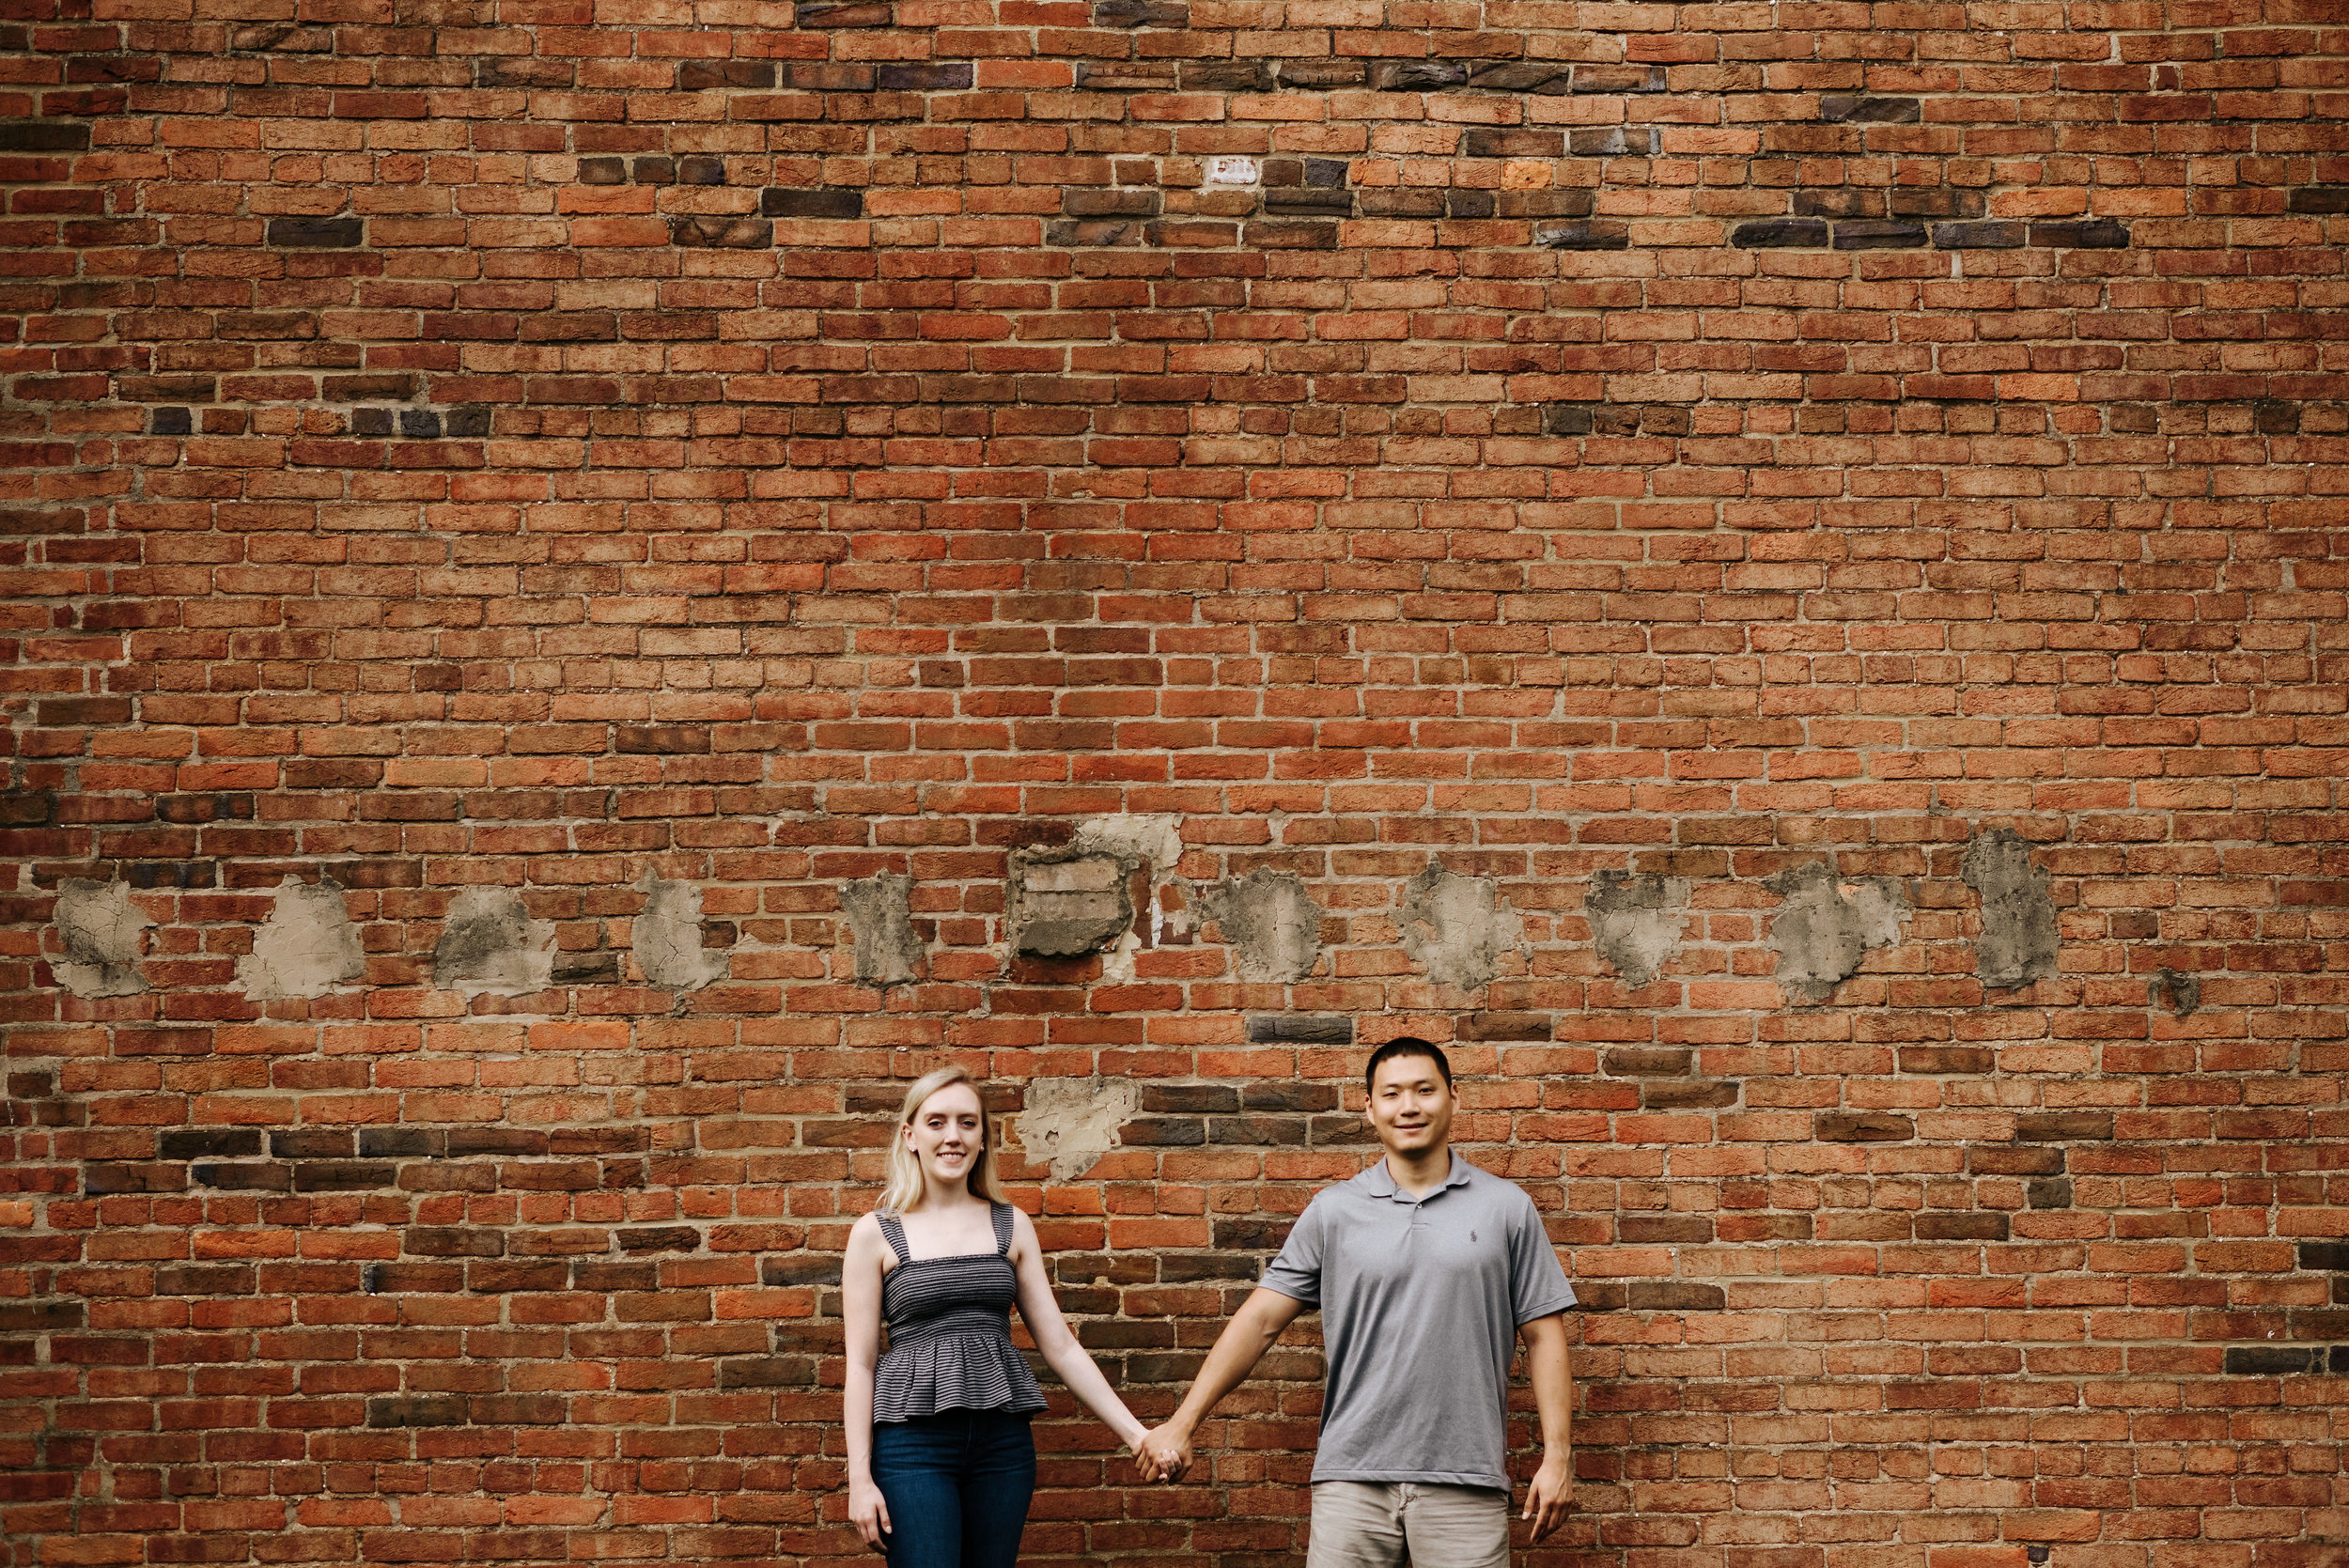 Bella_Alec_Old_Town_Alexandria_Engagement_Session_Photography_by_V_5825.jpg